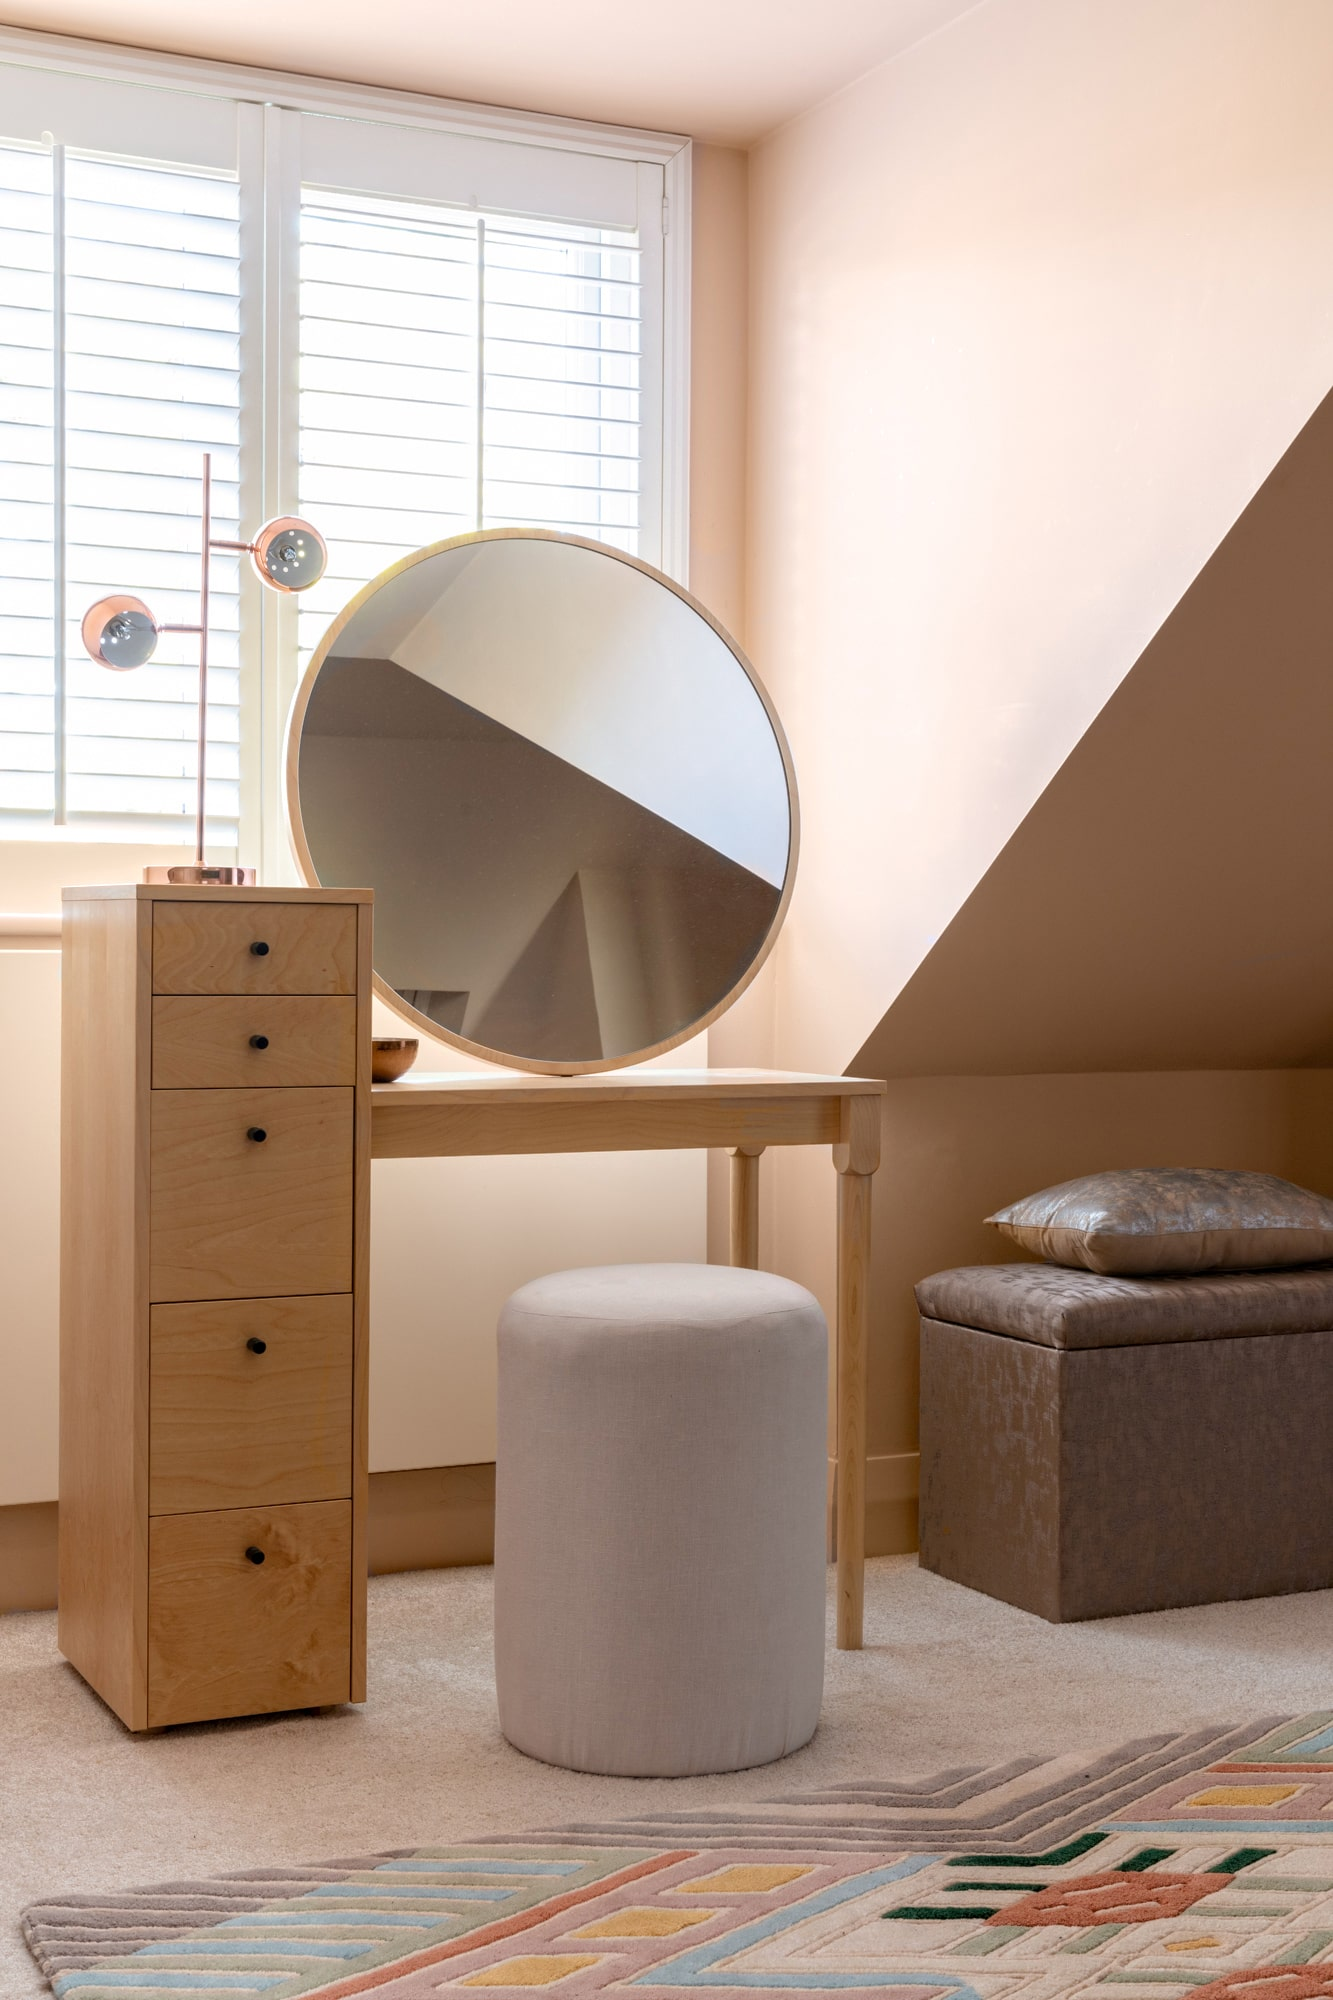 Nude bedroom: dressing table with round chair and round mirror